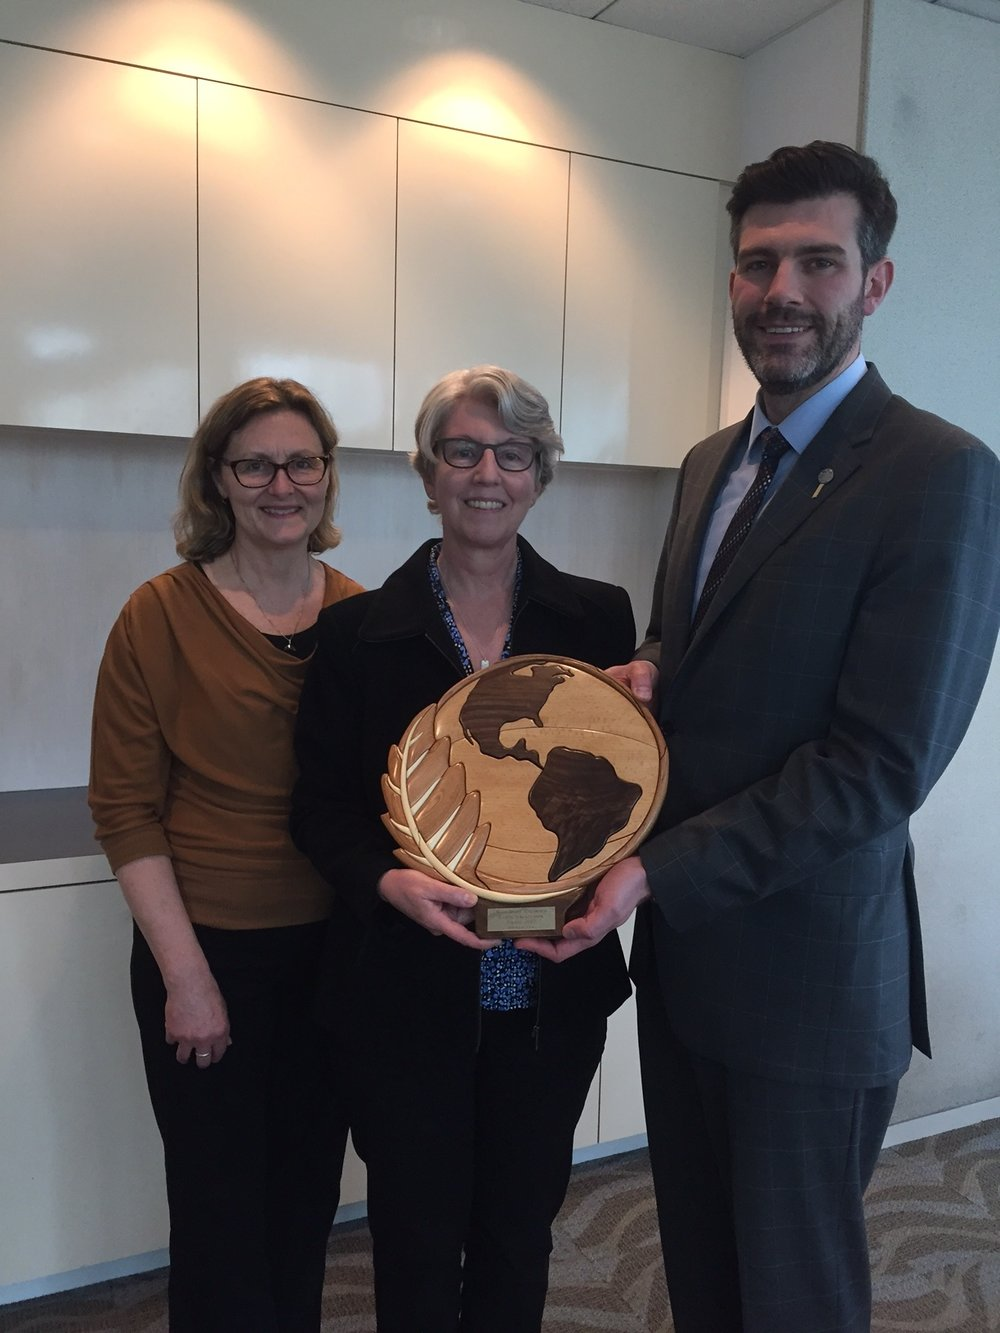 Mayor Don Iveson presents the 2017 Earth Ambassador Award to Wildbirds Unlimited.